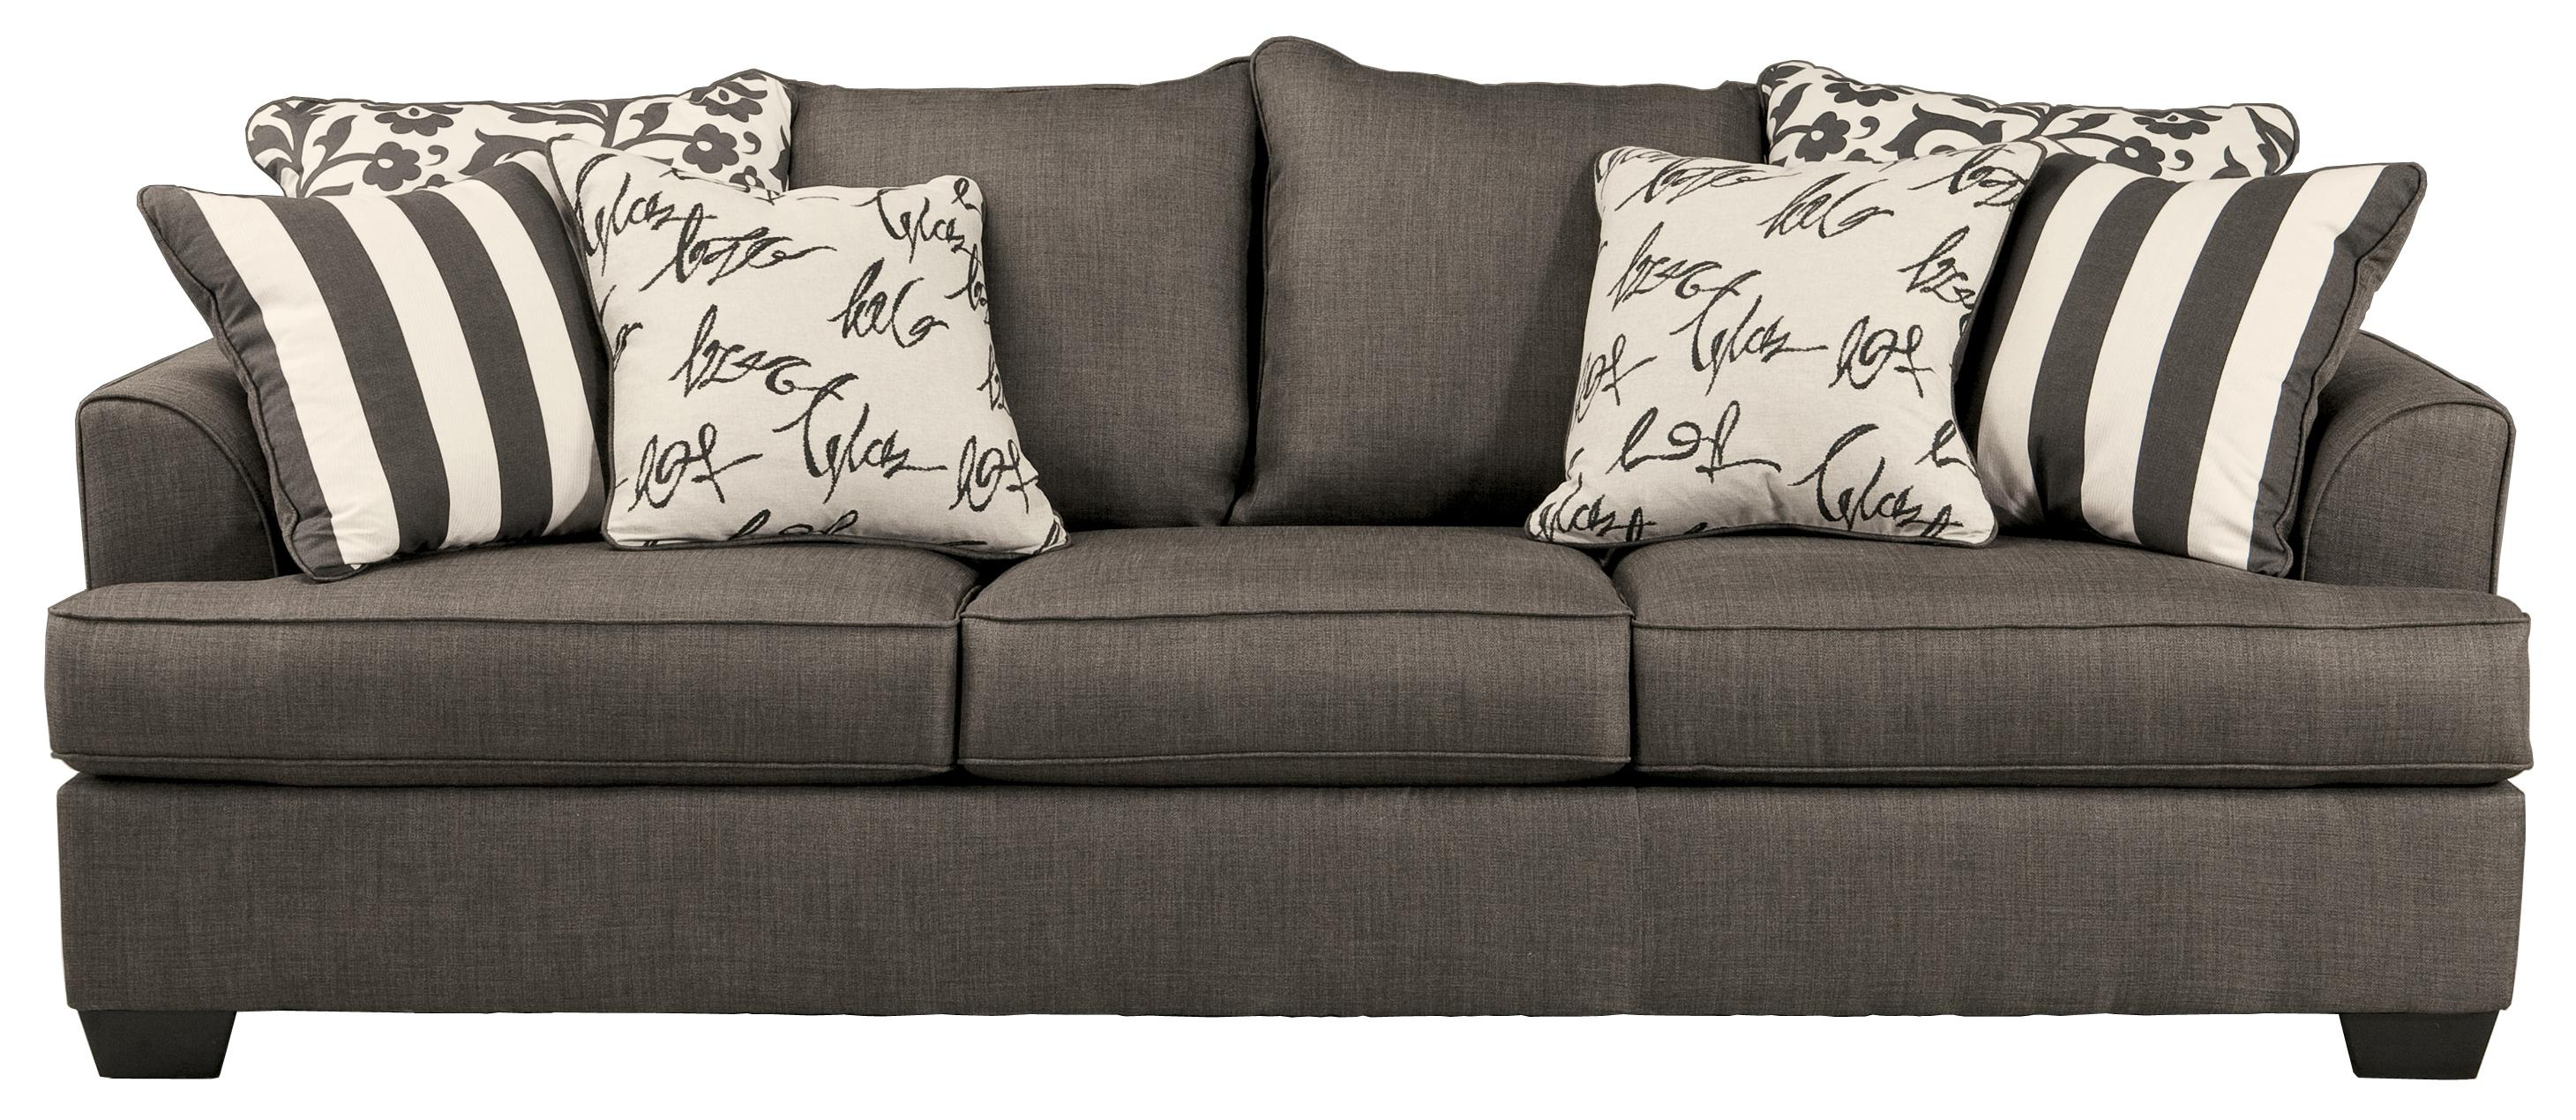 Signature Design by Ashley Levon   Charcoal 7340338 Sofa with     Signature Design by Ashley Levon   Charcoal Sofa   Item Number  7340338